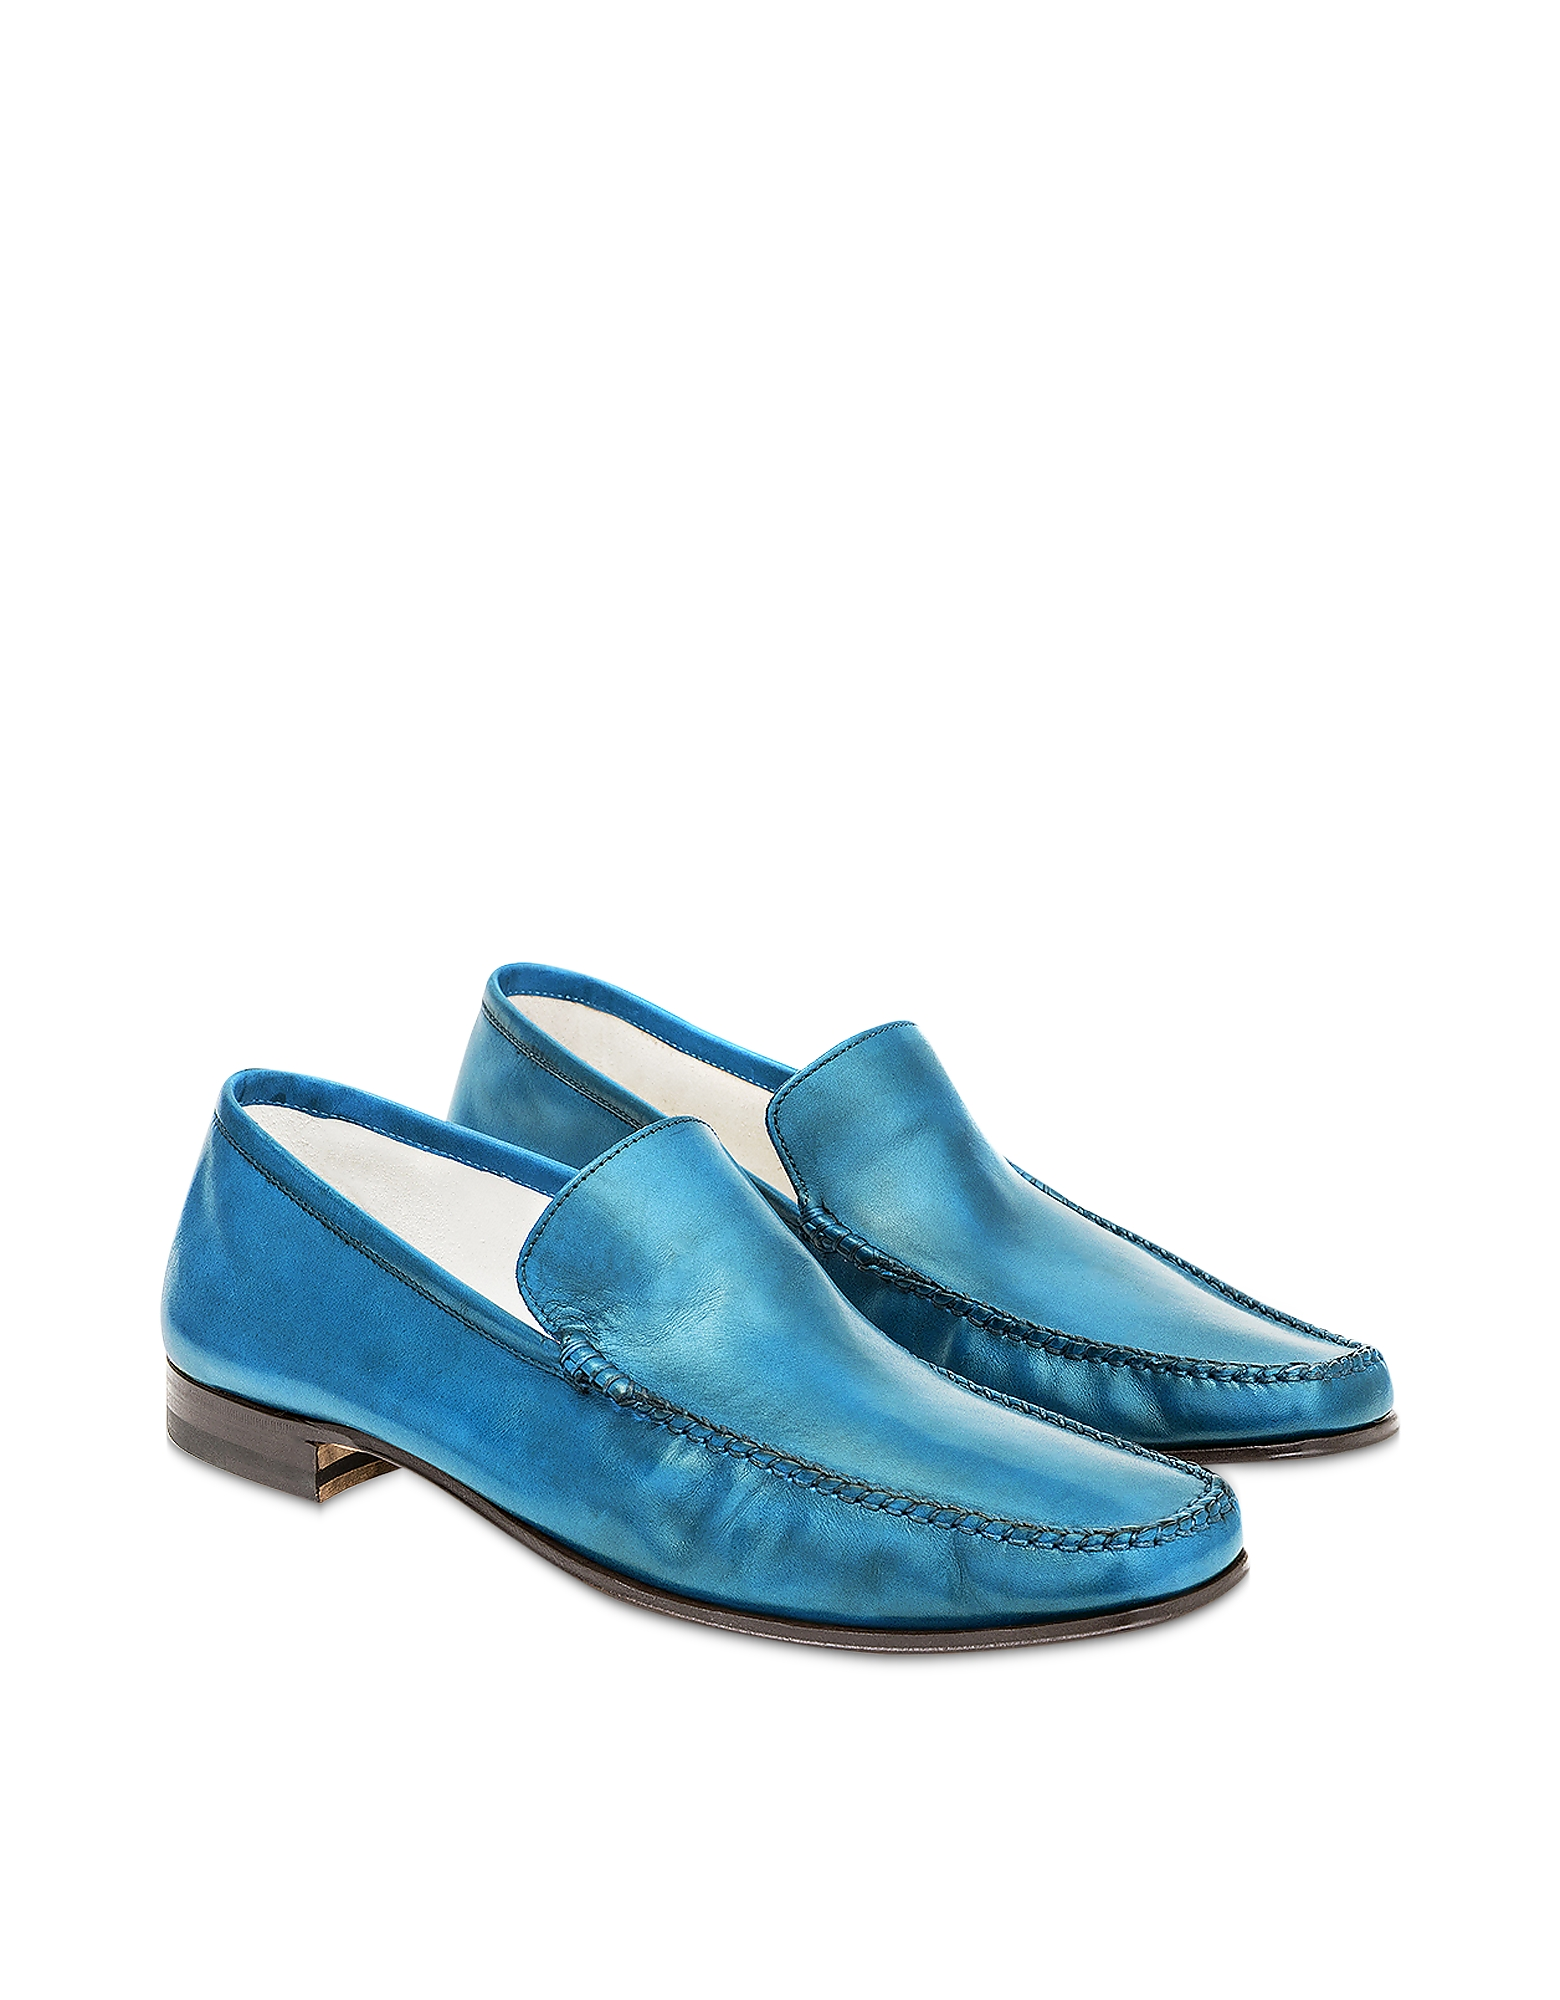 Pakerson Designer Shoes, Sky Blue Italian Handmade Leather Loafer Shoes